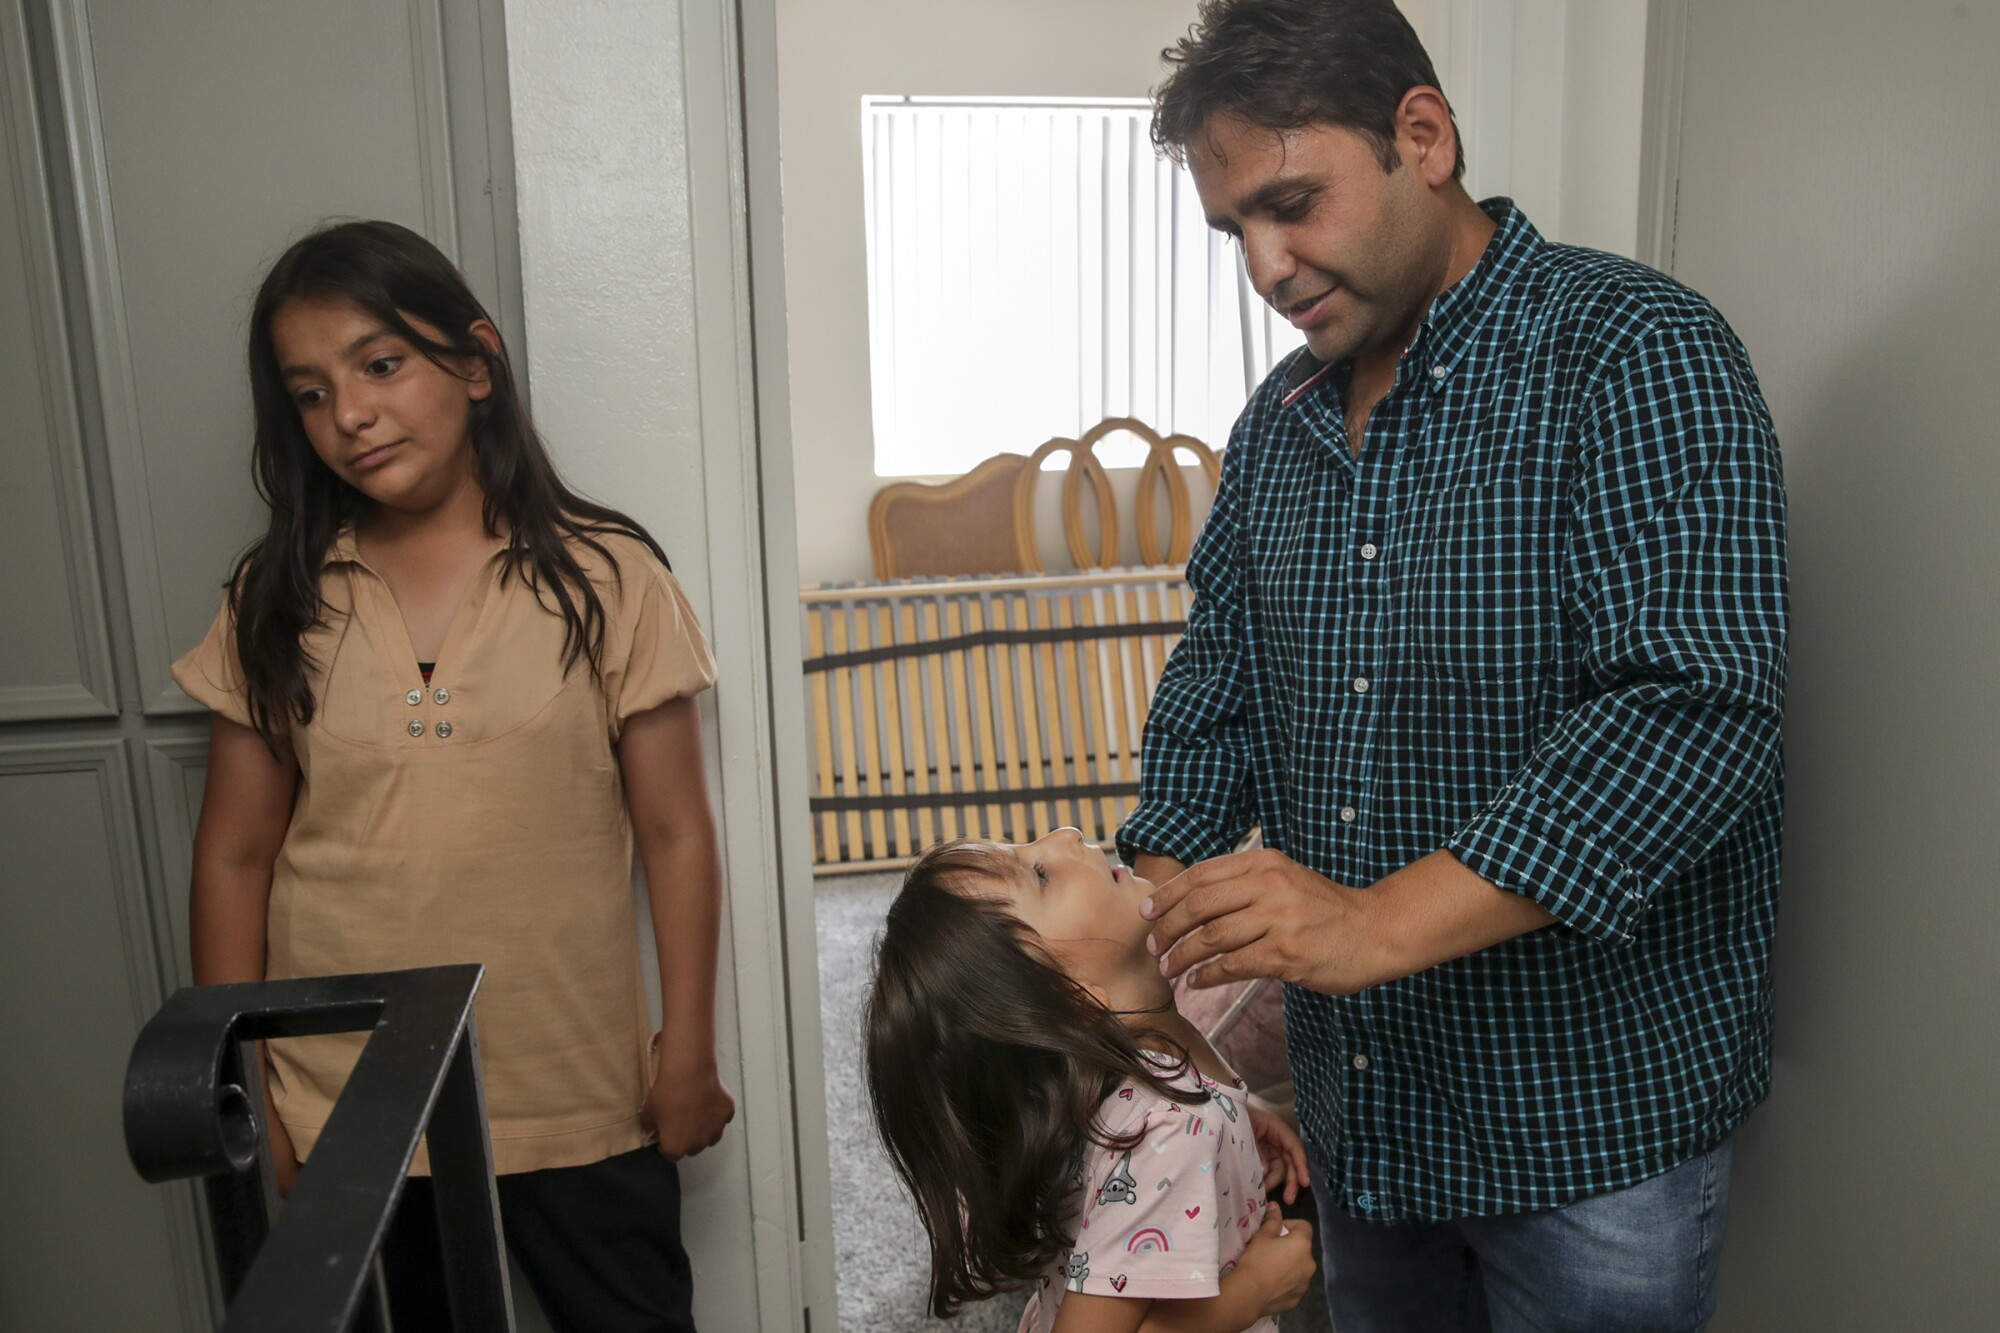 Sayed Omer Sadat, an Afghan refugee, with daughters Asma, 11, left, and Aqsa, 6, in their new apartment in El Cajon.